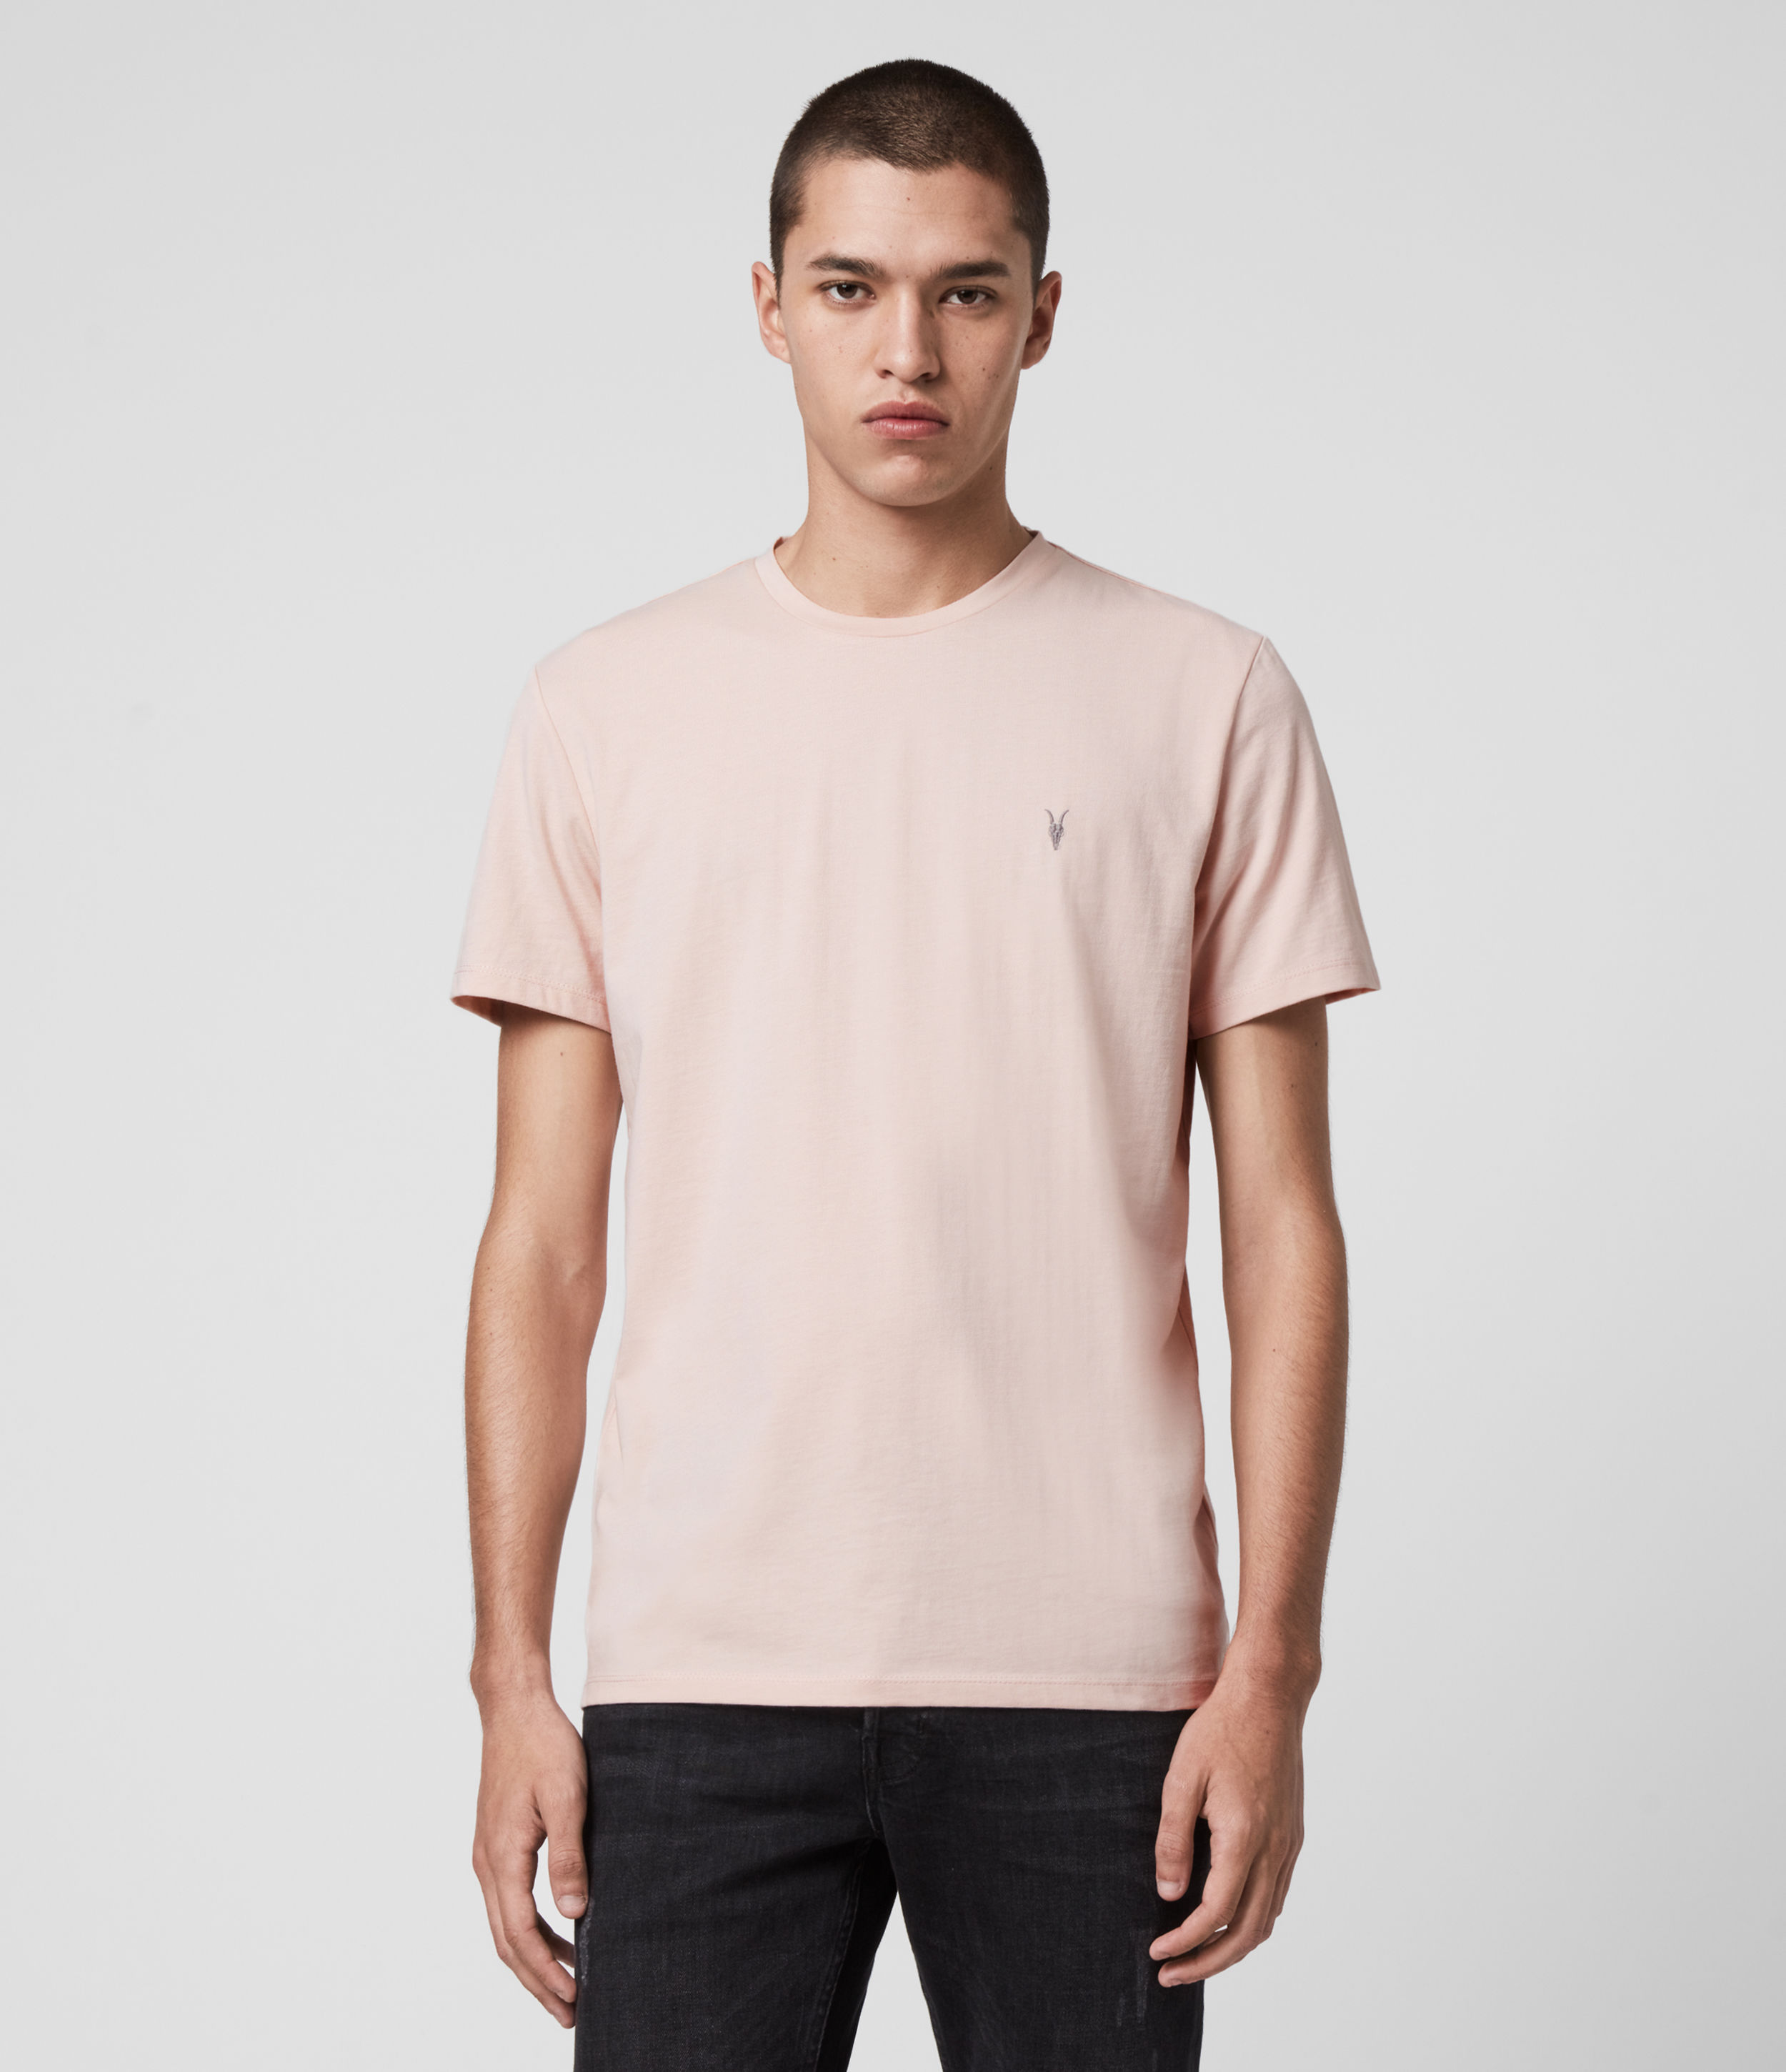 AllSaints Men's Cotton Laiden Crew T-Shirt, Pink, Size: XL